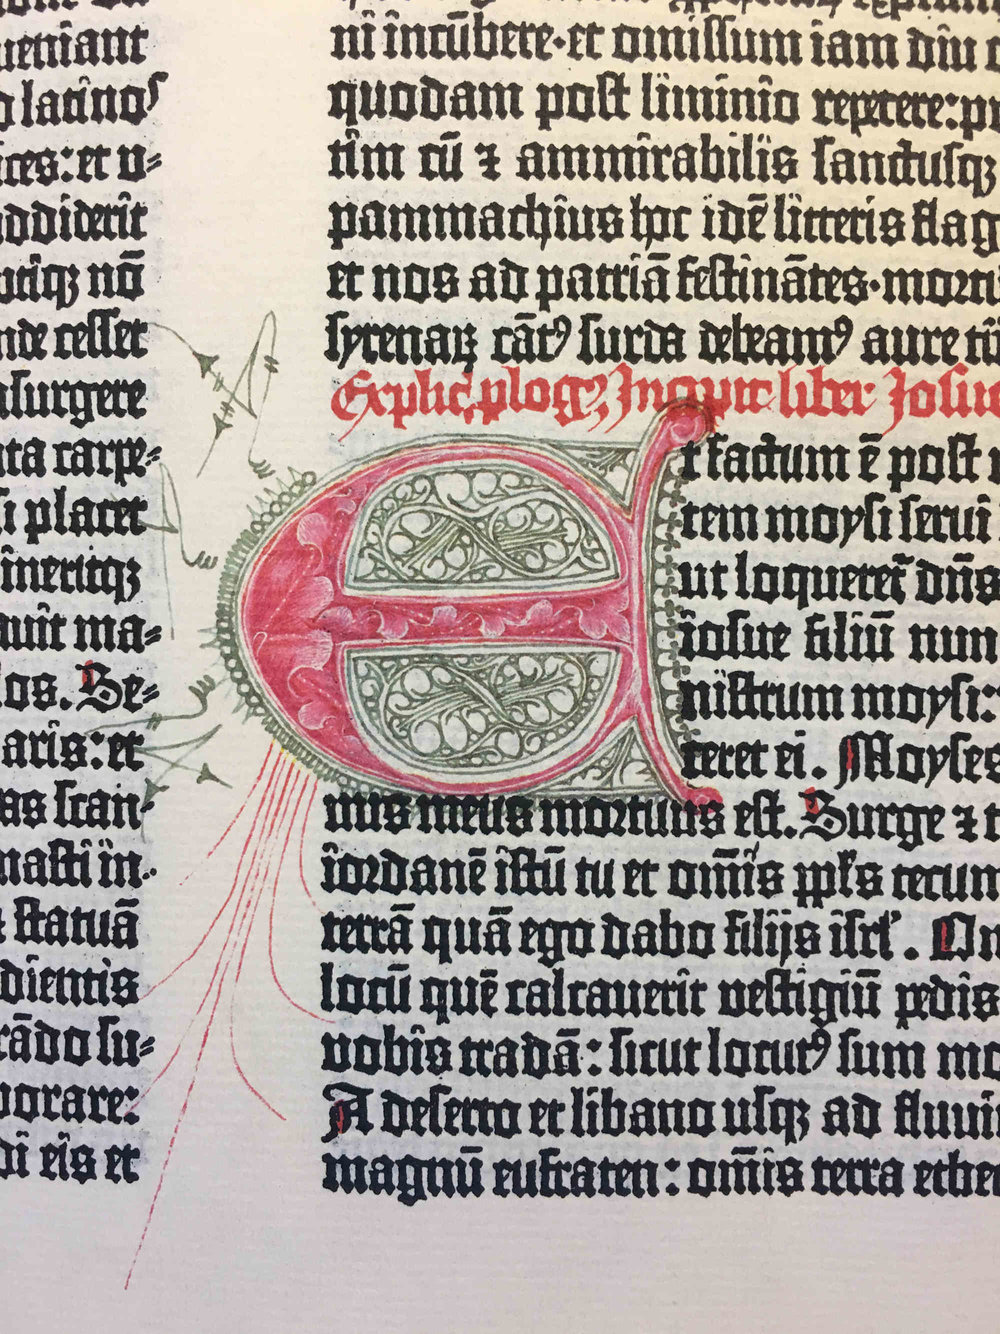 A photo of one of the illuminated dropcaps in the Gutenberg bible facsimile.  Matilde  and I went through the volume, and there are a lot less than I expected from other photos I've seen (something I suppose I'm perpetuating by showing this rather than a page of type alone)